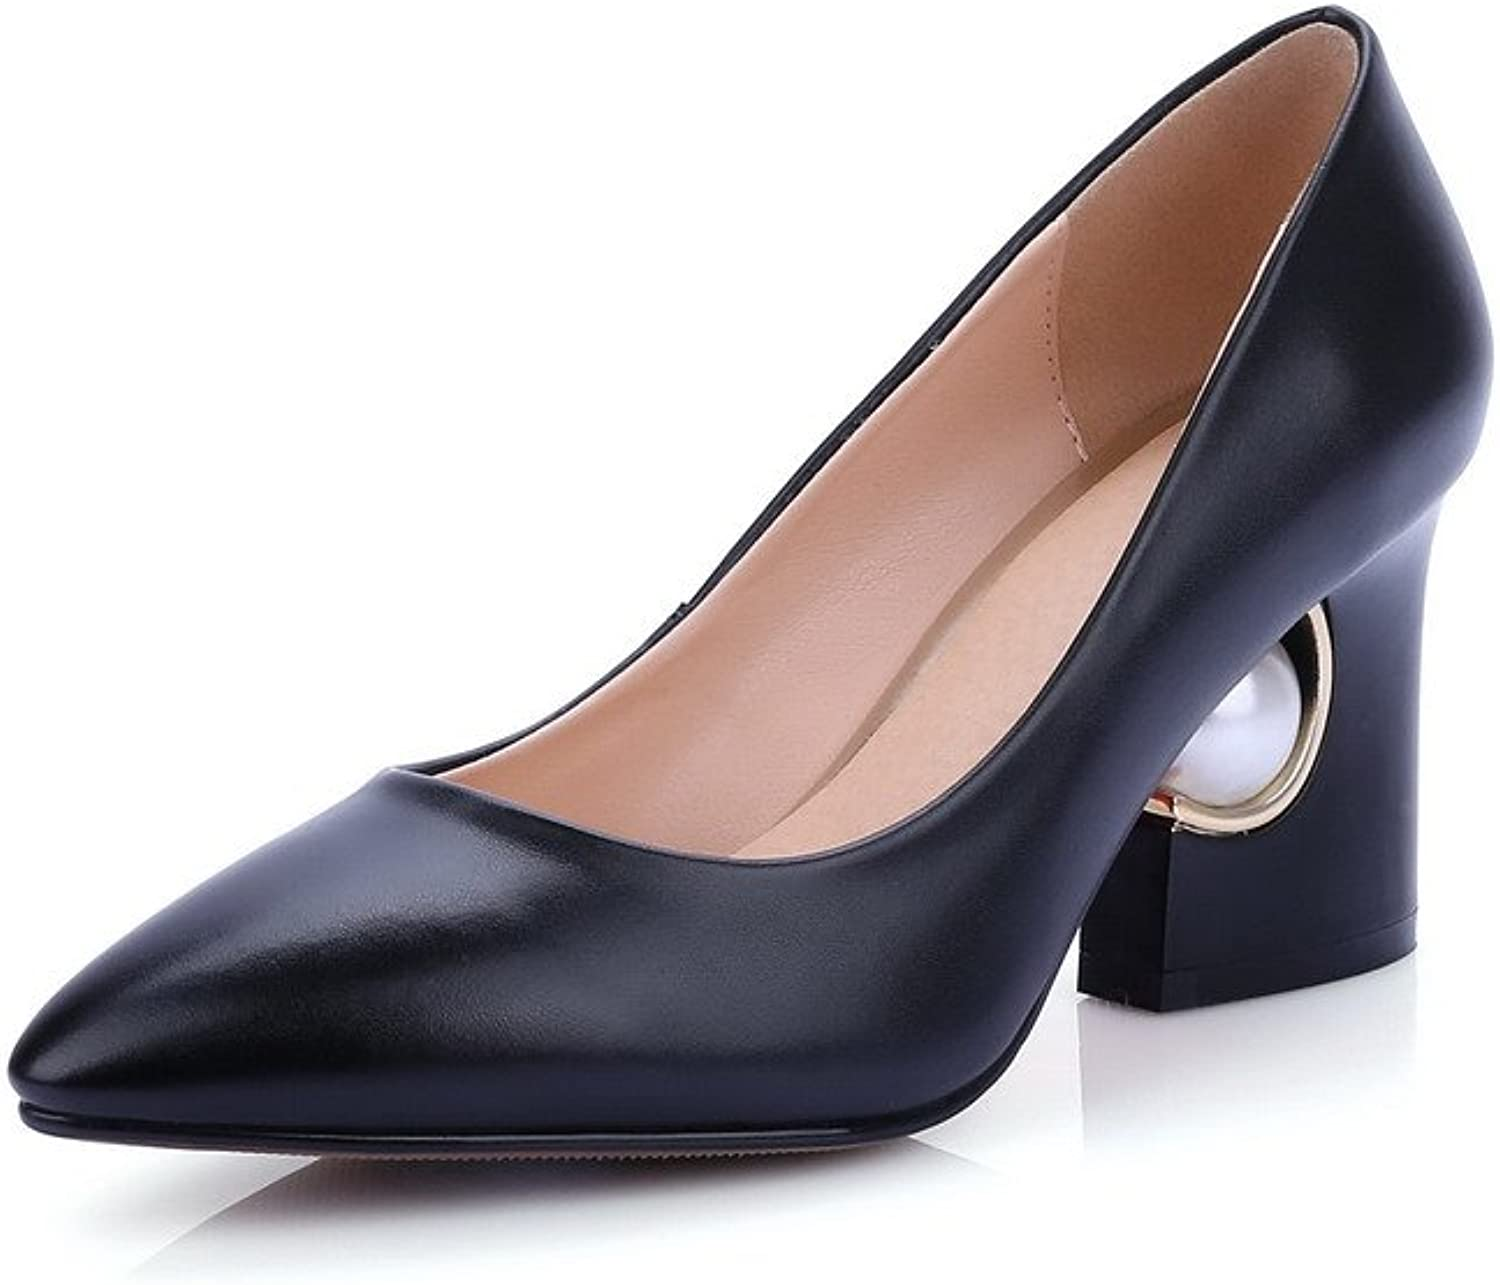 WeenFashion Women's Pull On Cow Leather Pointed Closed Toe High Heels Pumps shoes with Gem